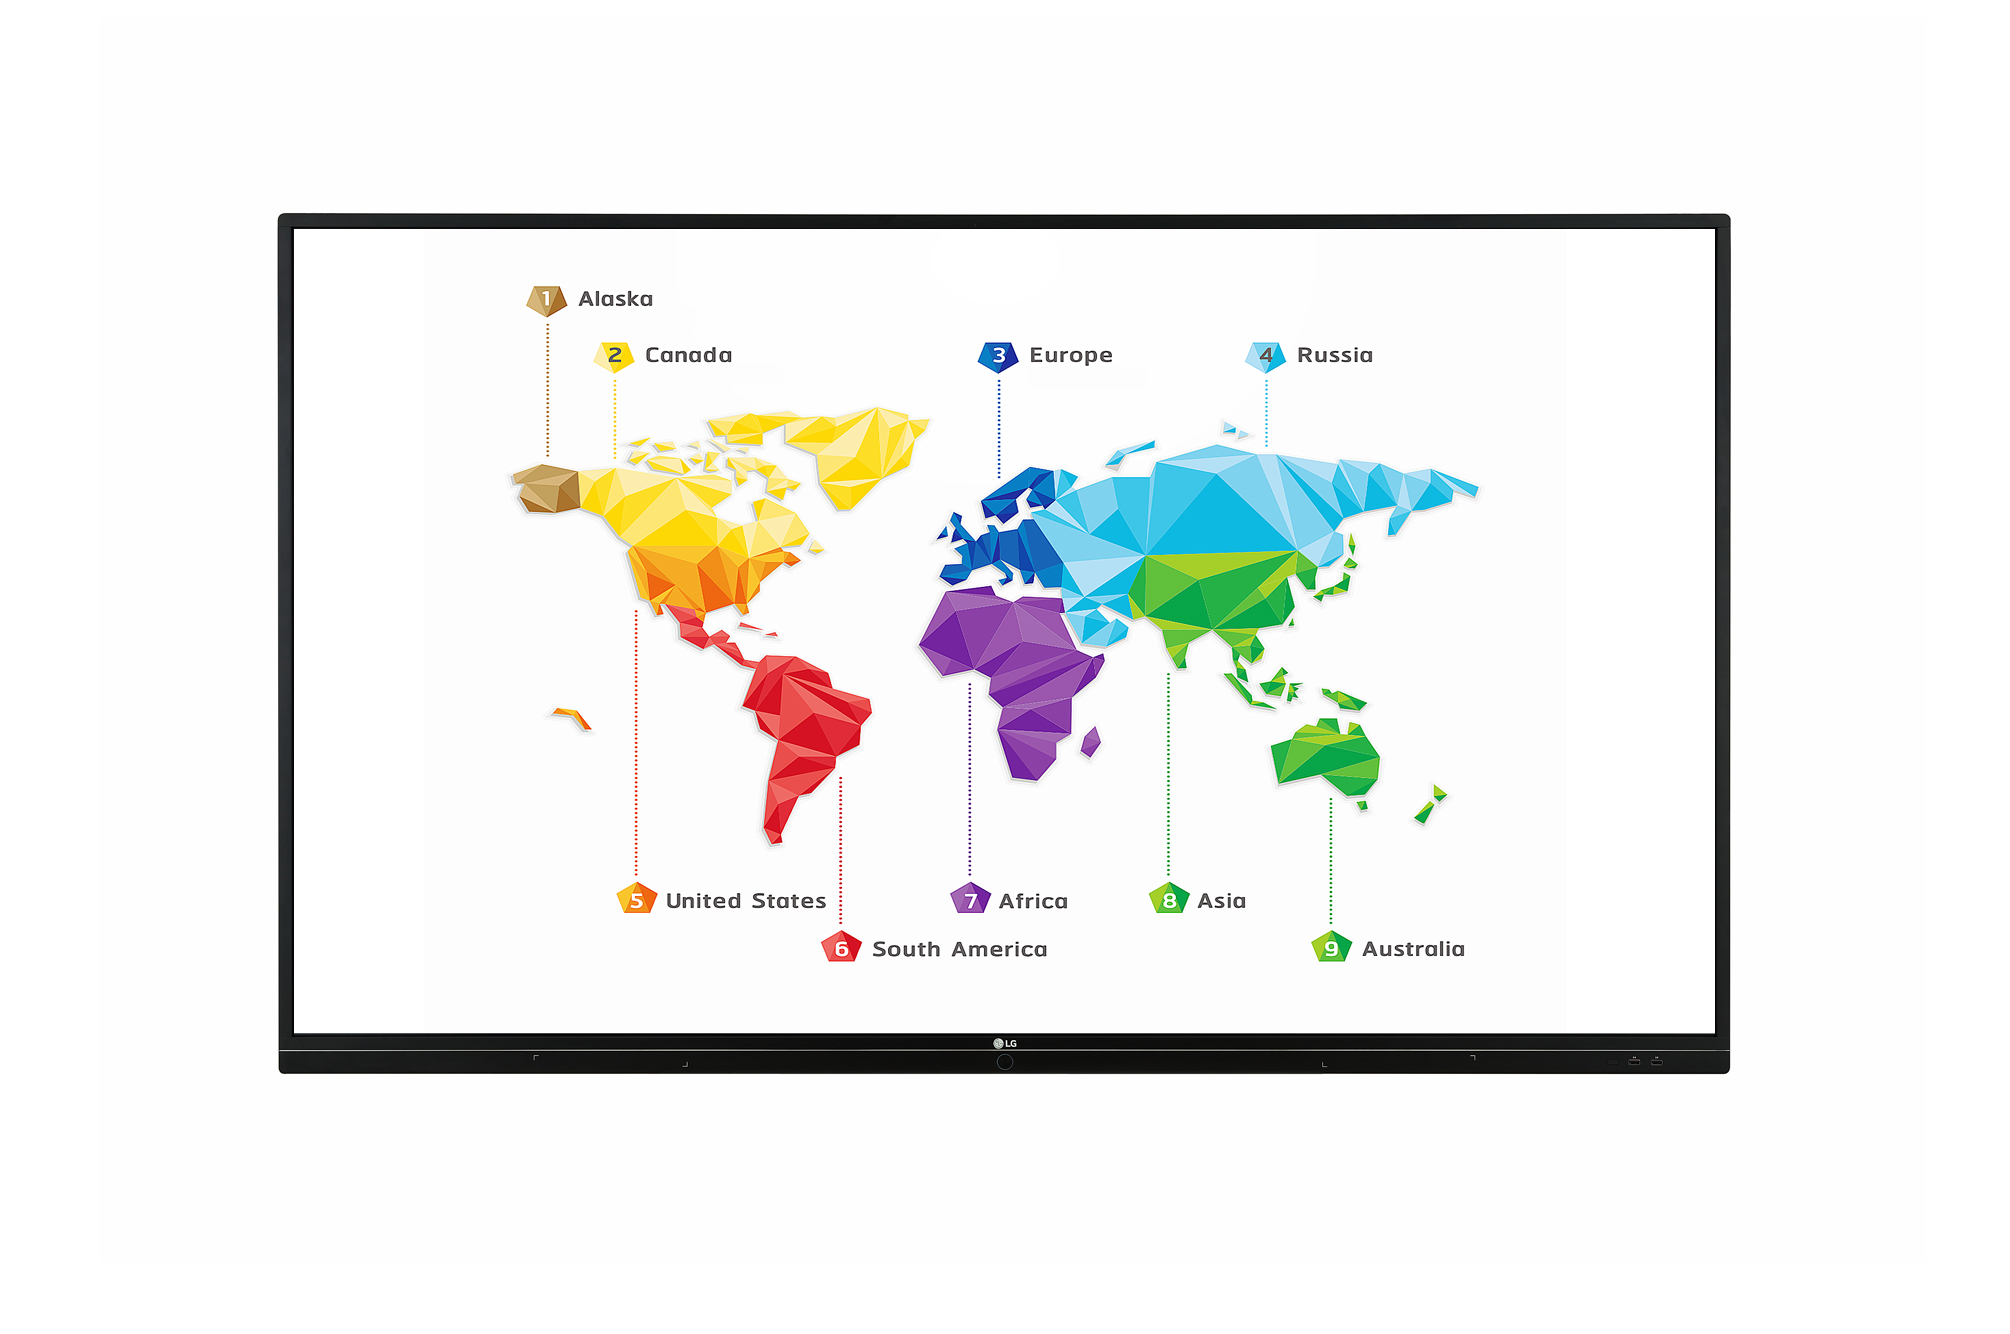 LG 86TR3BF 86 Inch 3840 x 2160 4K 330nit 16/7 Interactive Touchscreen Commercial Display